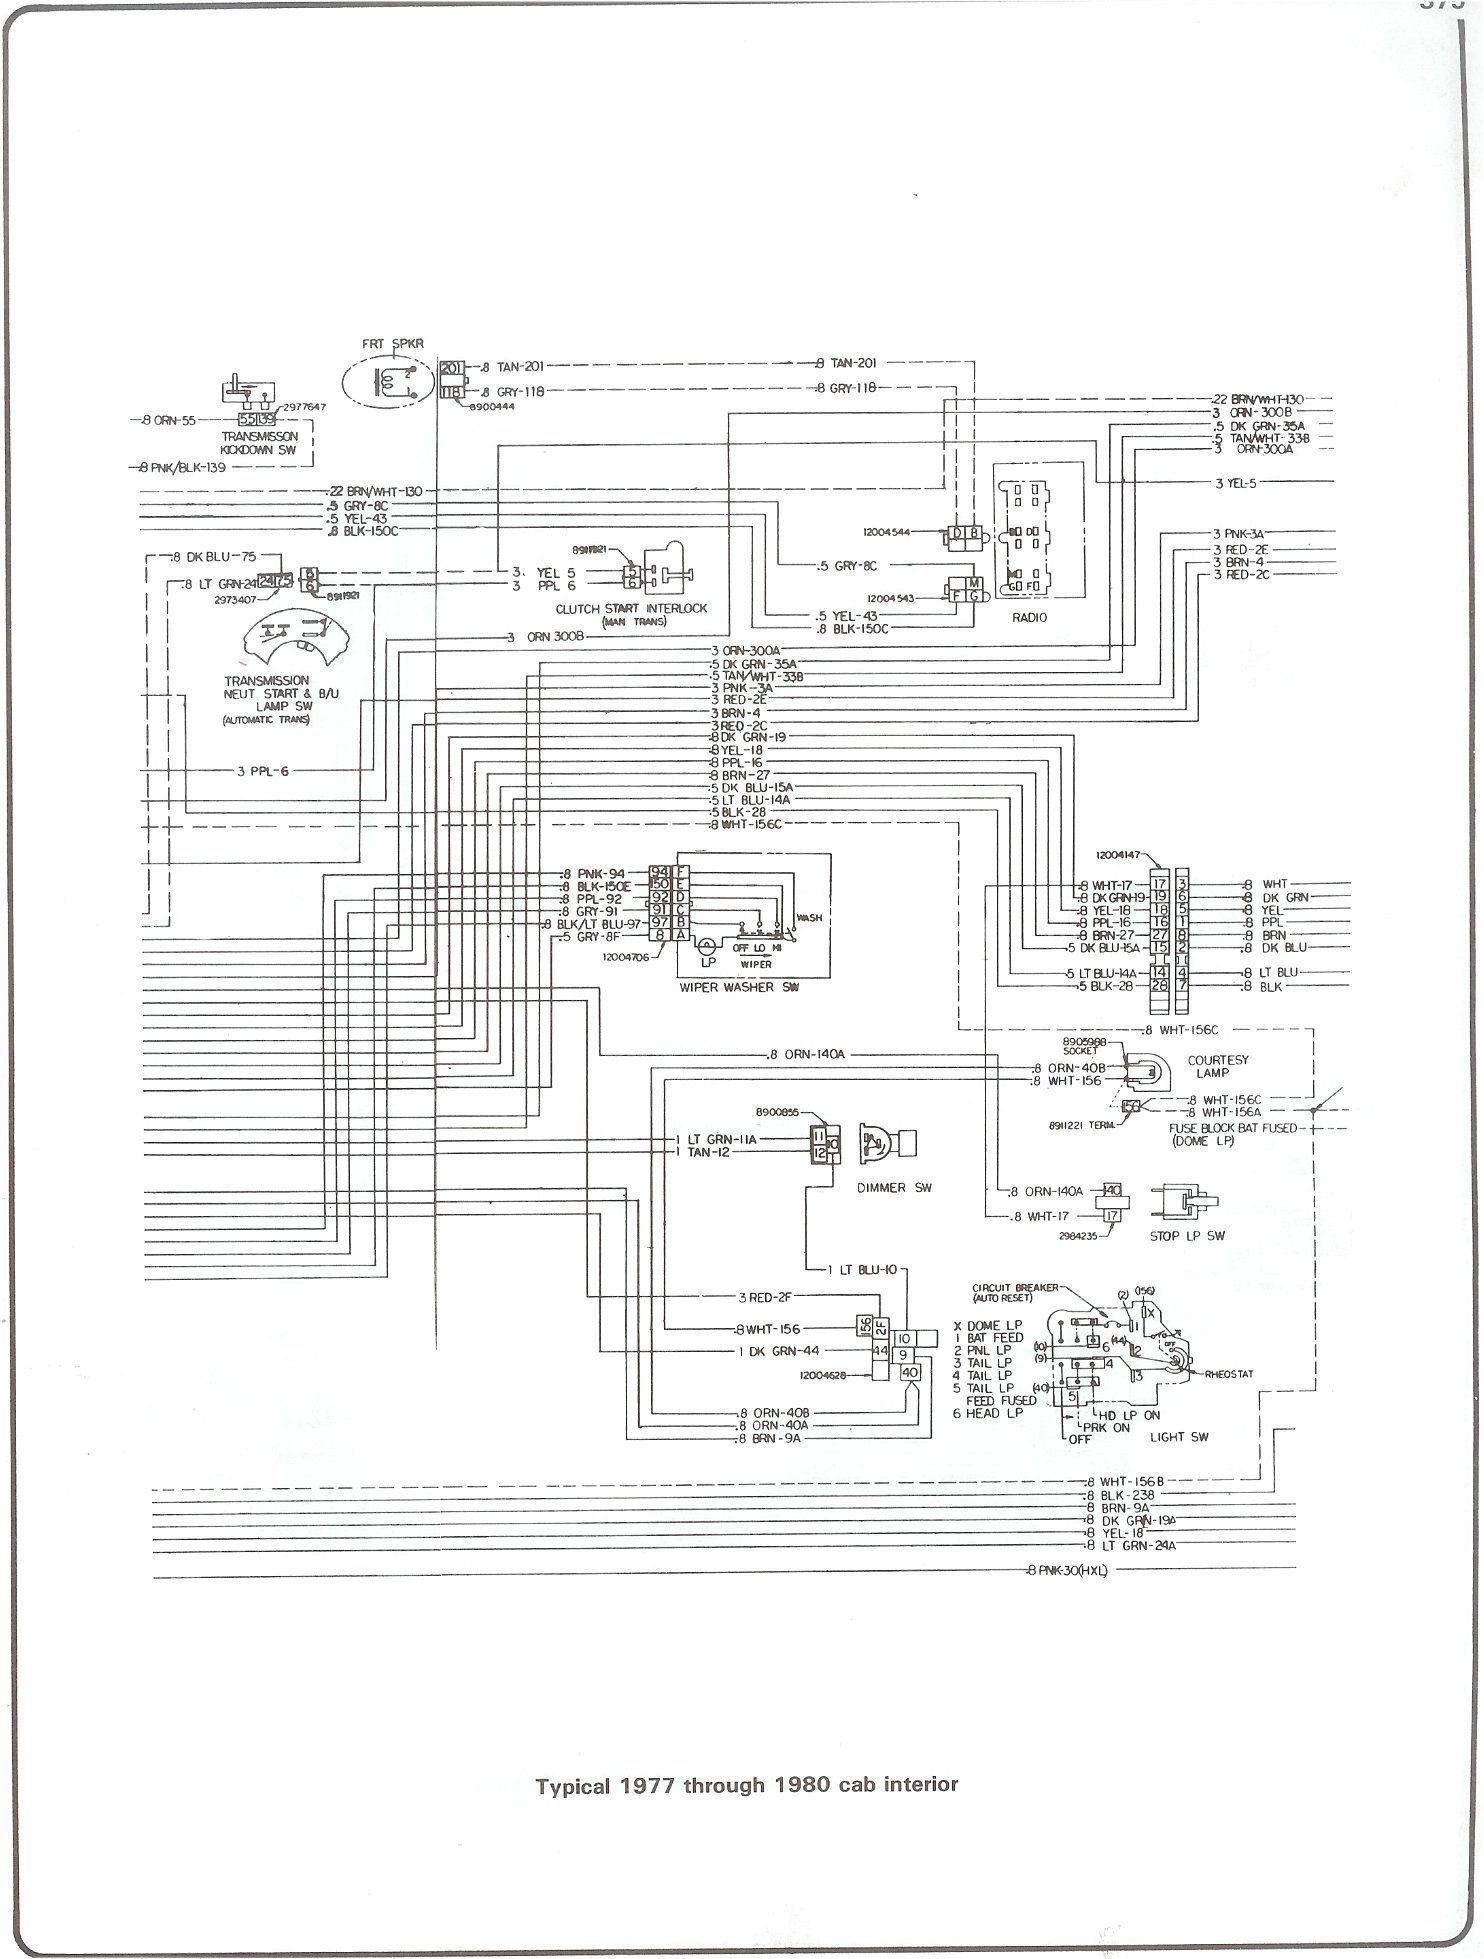 complete 73 87 wiring diagrams rh forum 73 87chevytrucks com 1977 chevy nova wiring diagram 1977 chevy k20 wiring diagram